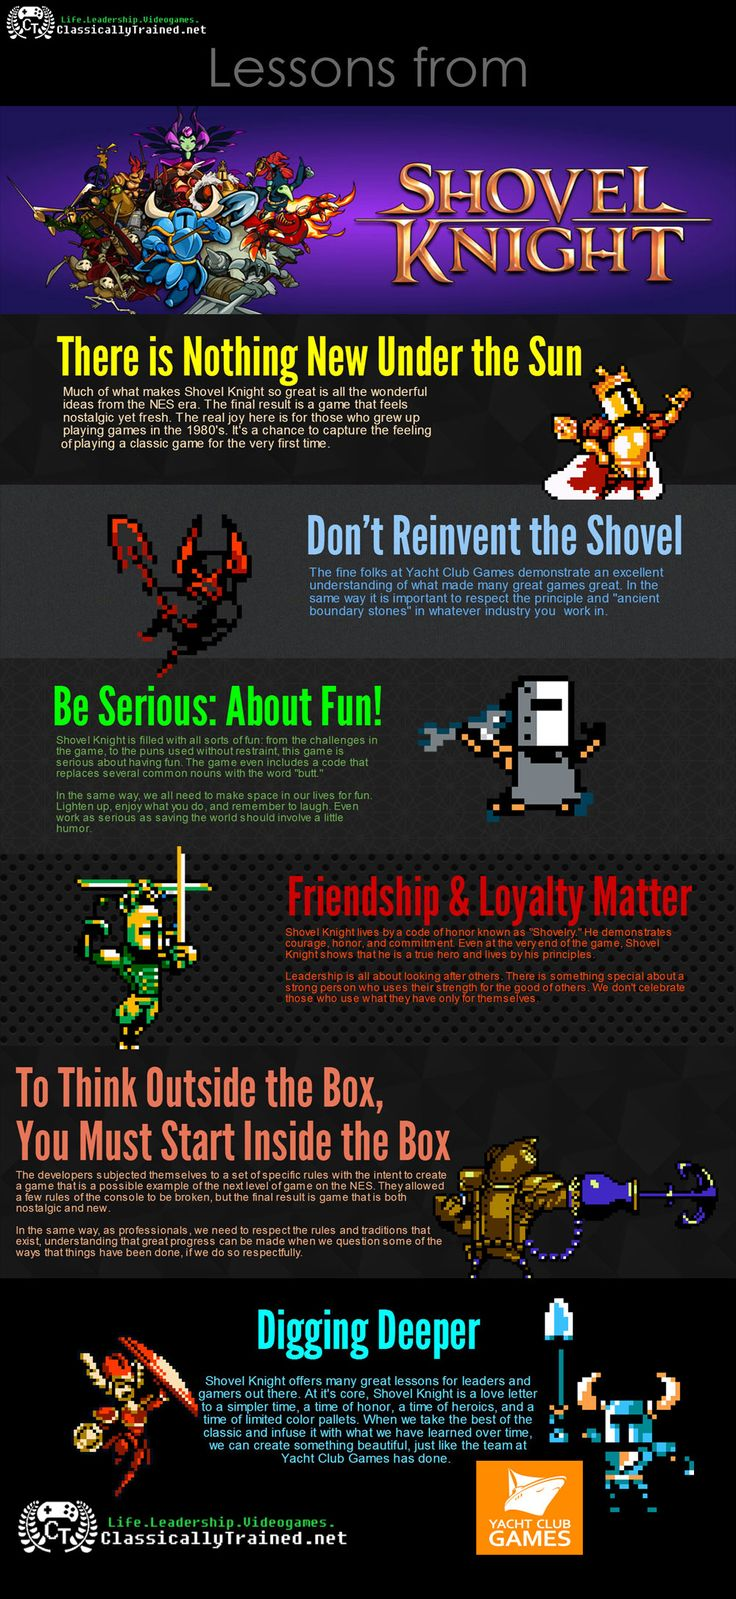 5 Life & Leadership Lessons from Shovel Knight - Infographic